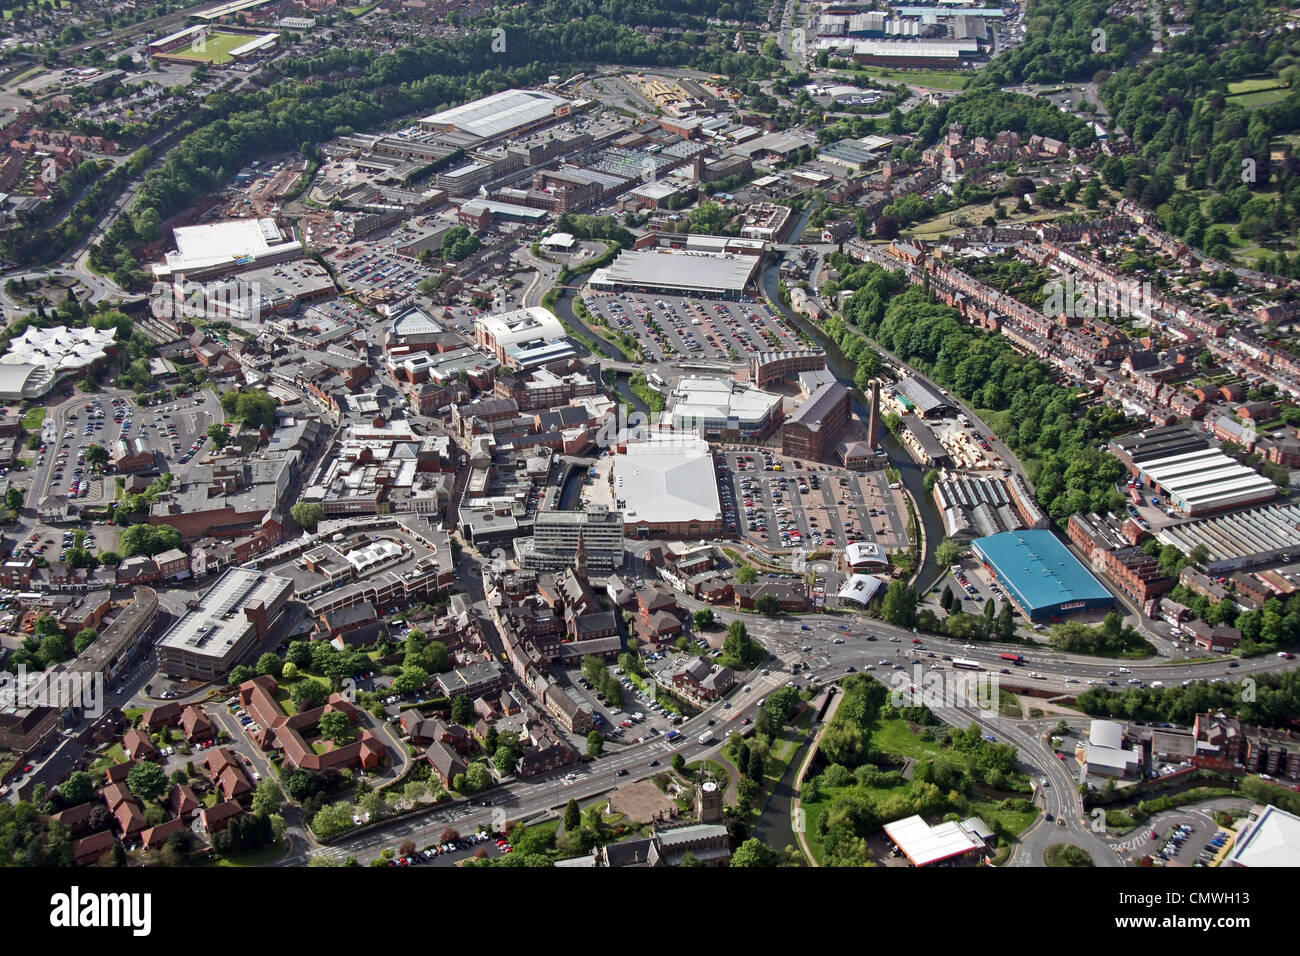 aerial view of Kidderminster town - Stock Image